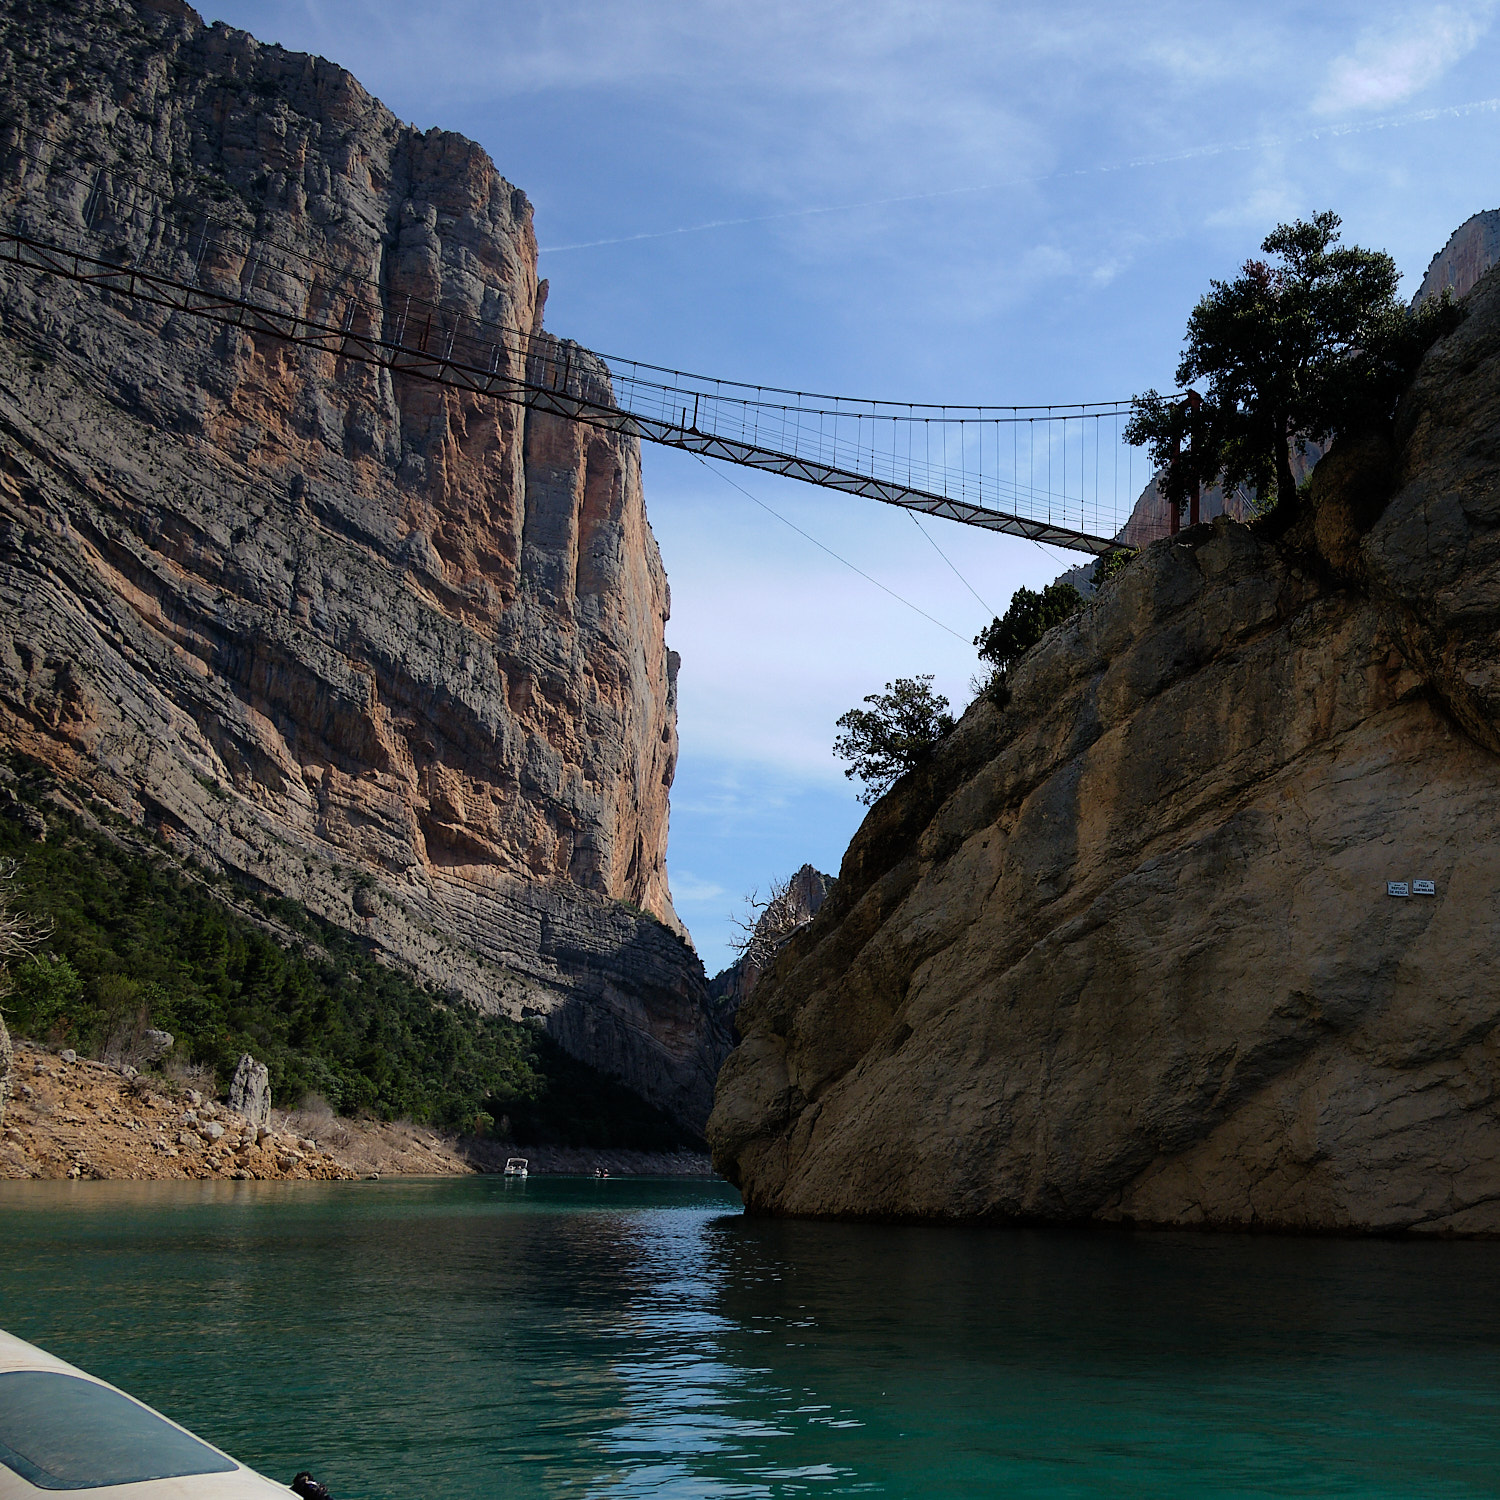 Tourists boats navigating the river upwards and downwards at Congost de Mont-rebei, Aragón/Cataluña, Spain